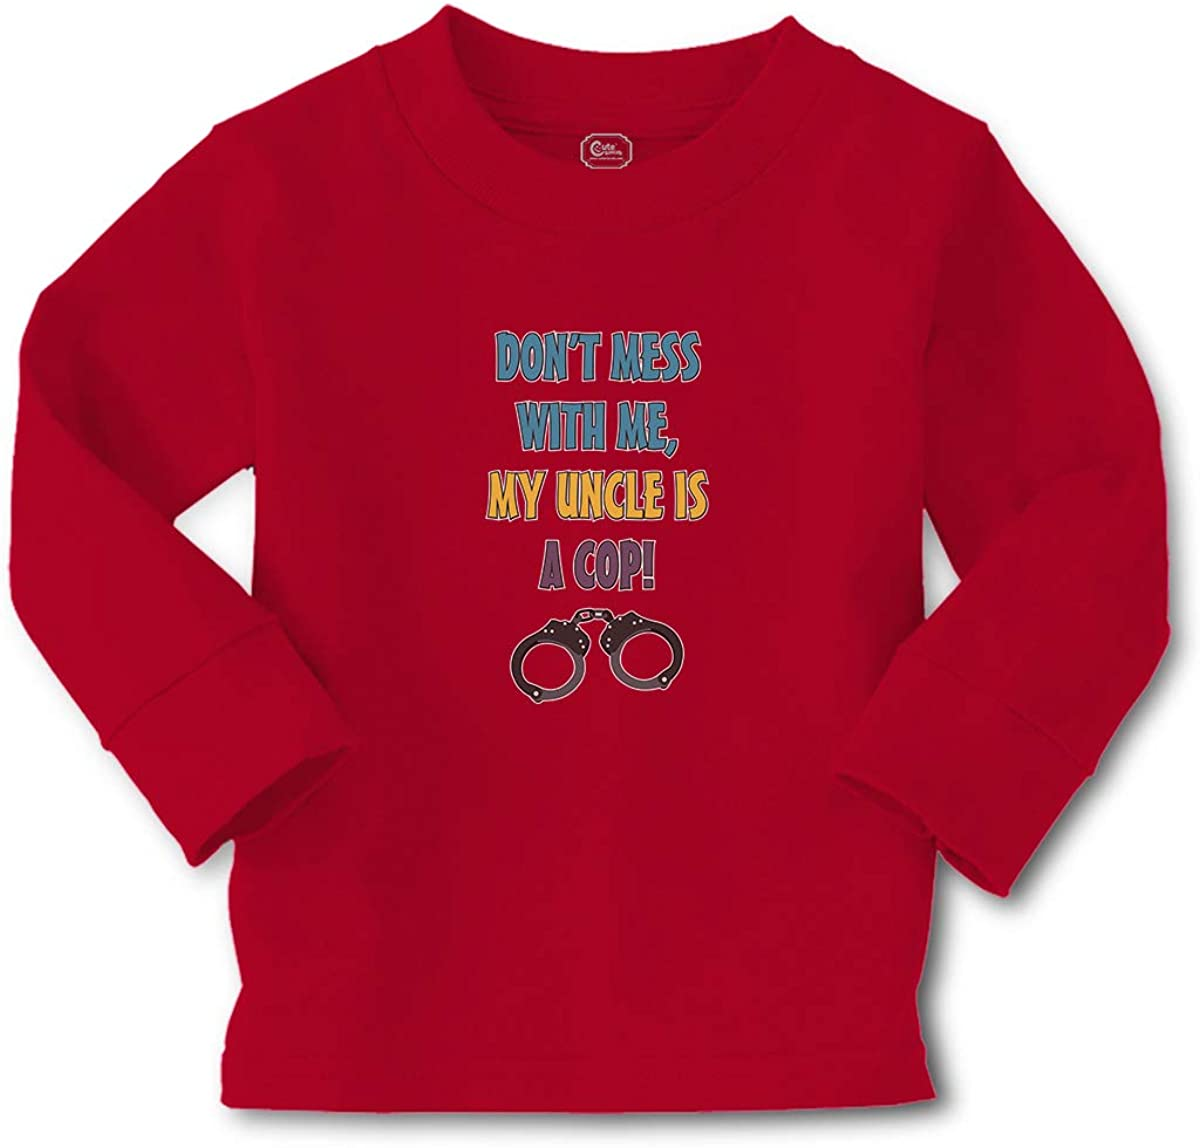 Kids Long Sleeve T Shirt Don't Mess with Me, My Uncle is A Cop! Profession Police Officer Hand Lock Cotton Boy & Girl Clothes Funny Graphic Tee Red Design Only 2T